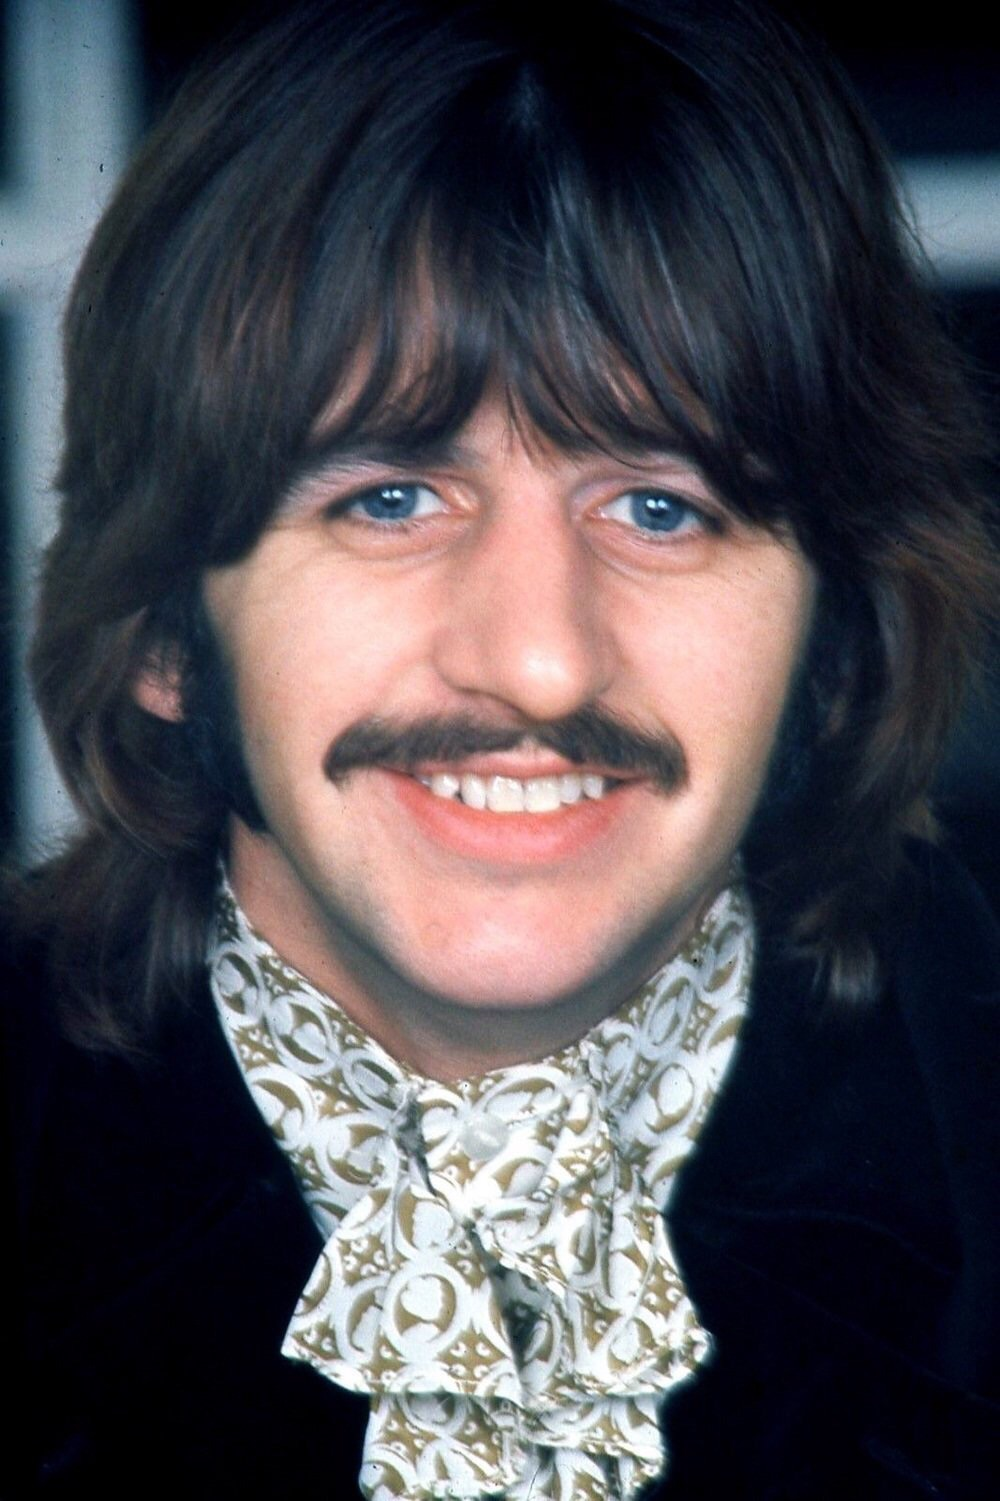 Ringo Starr photographed for The White Album. 1968.